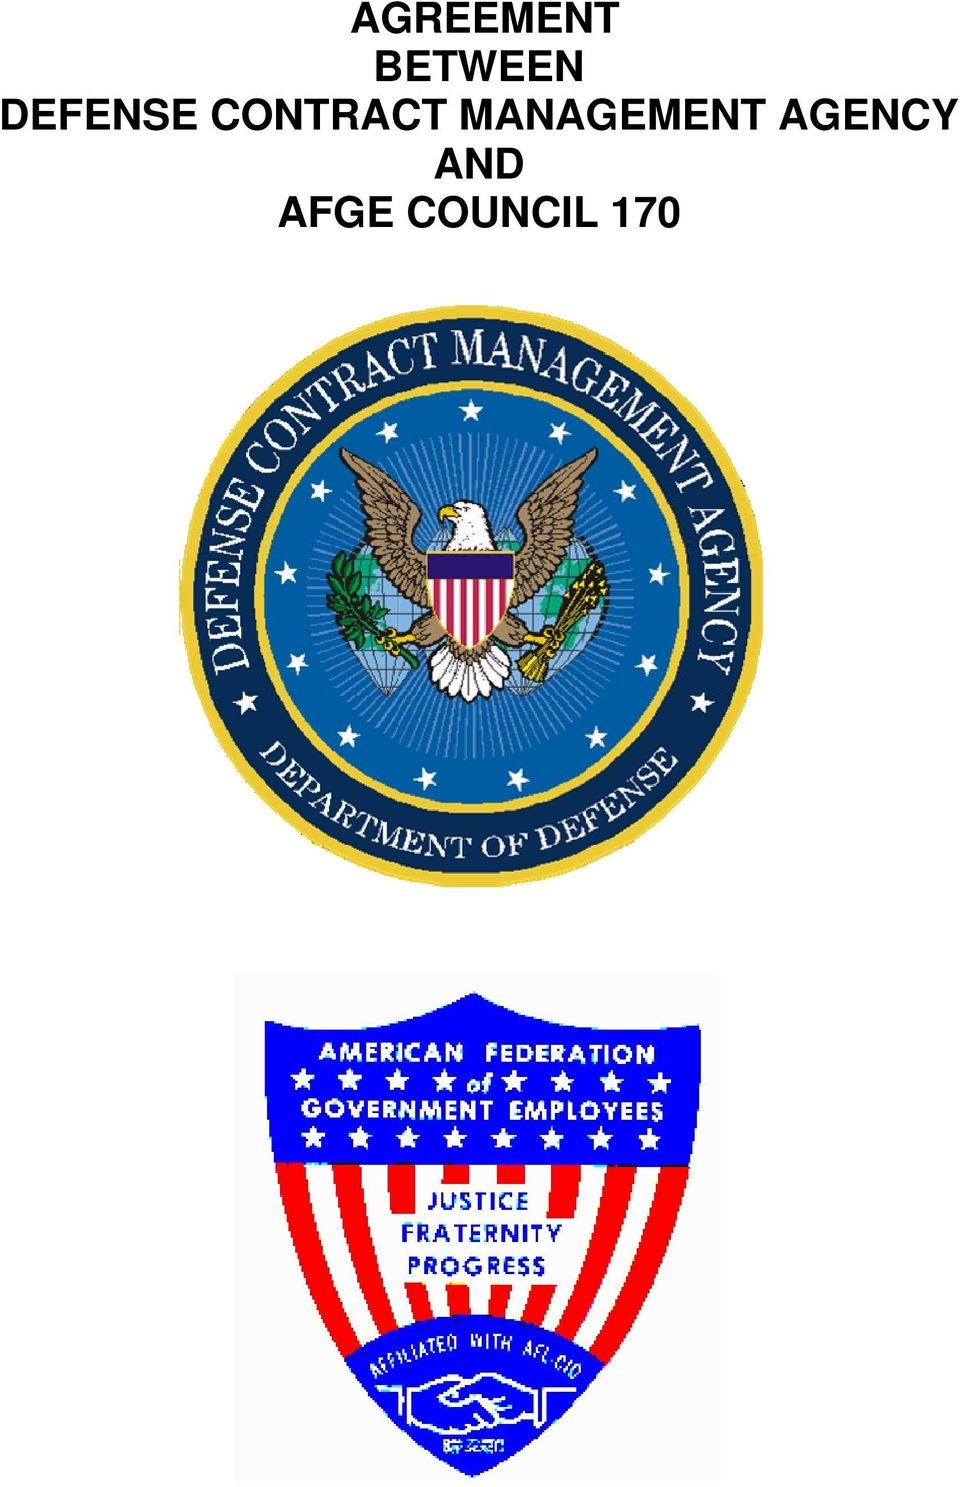 AGREEMENT BETWEEN DEFENSE CONTRACT MANAGEMENT AGENCY AND